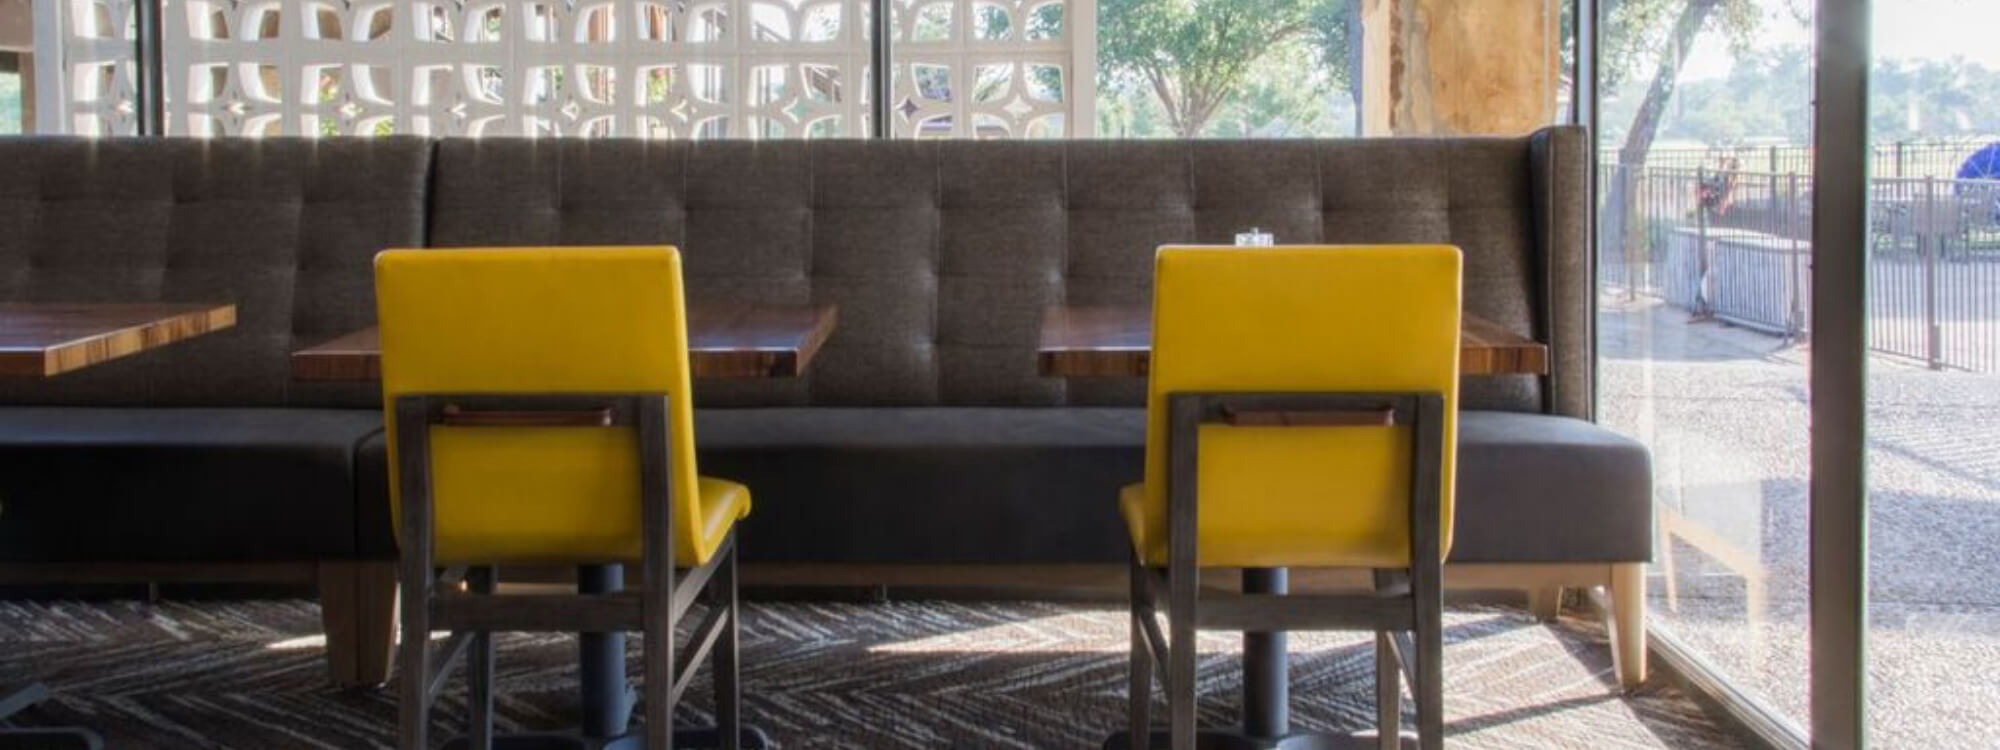 Custom Dining Banquette and Yellow Chairs